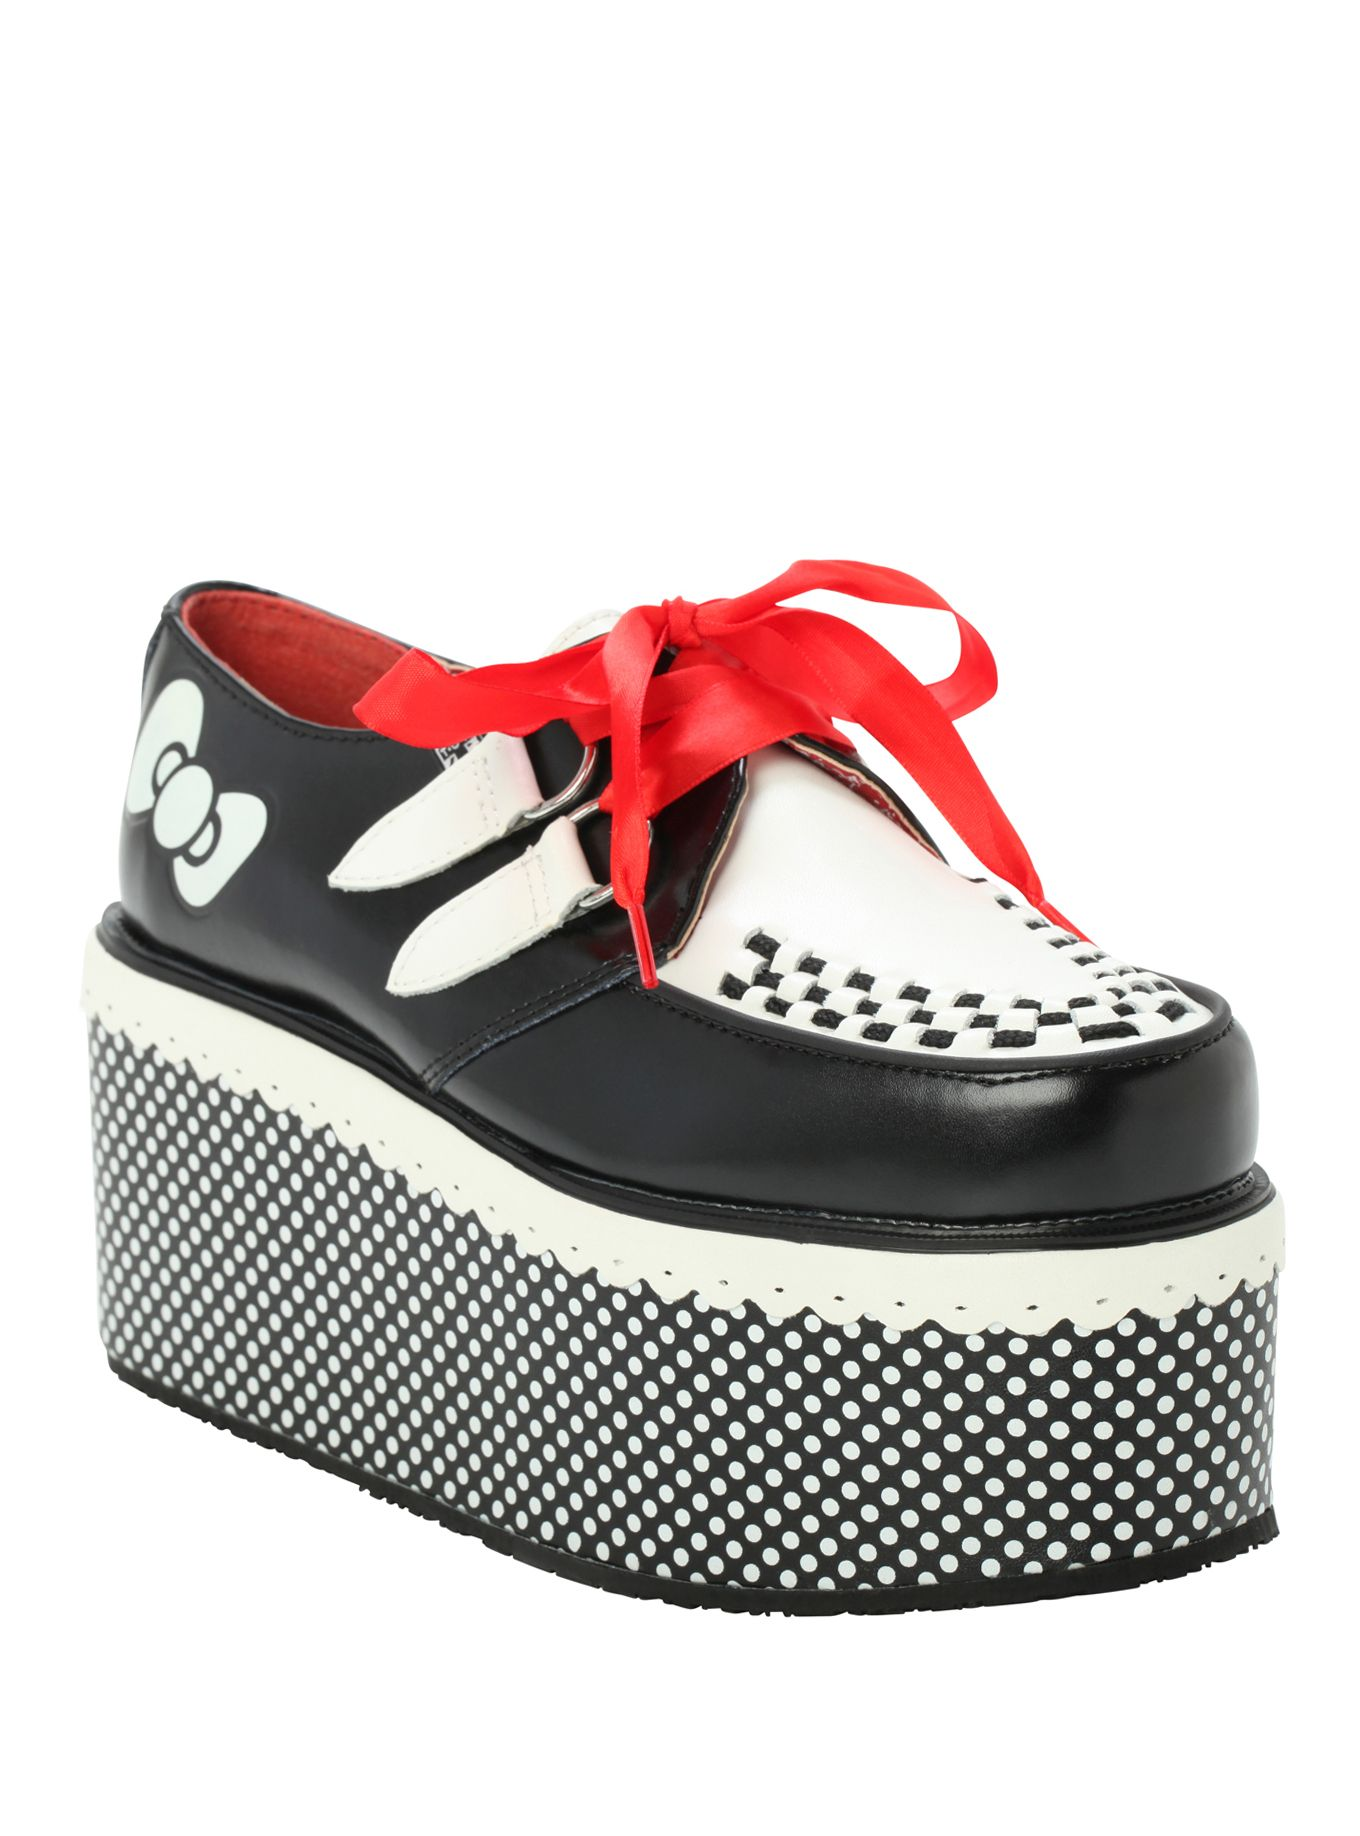 T U K Hello Kitty Bow Dot Stack Creepers